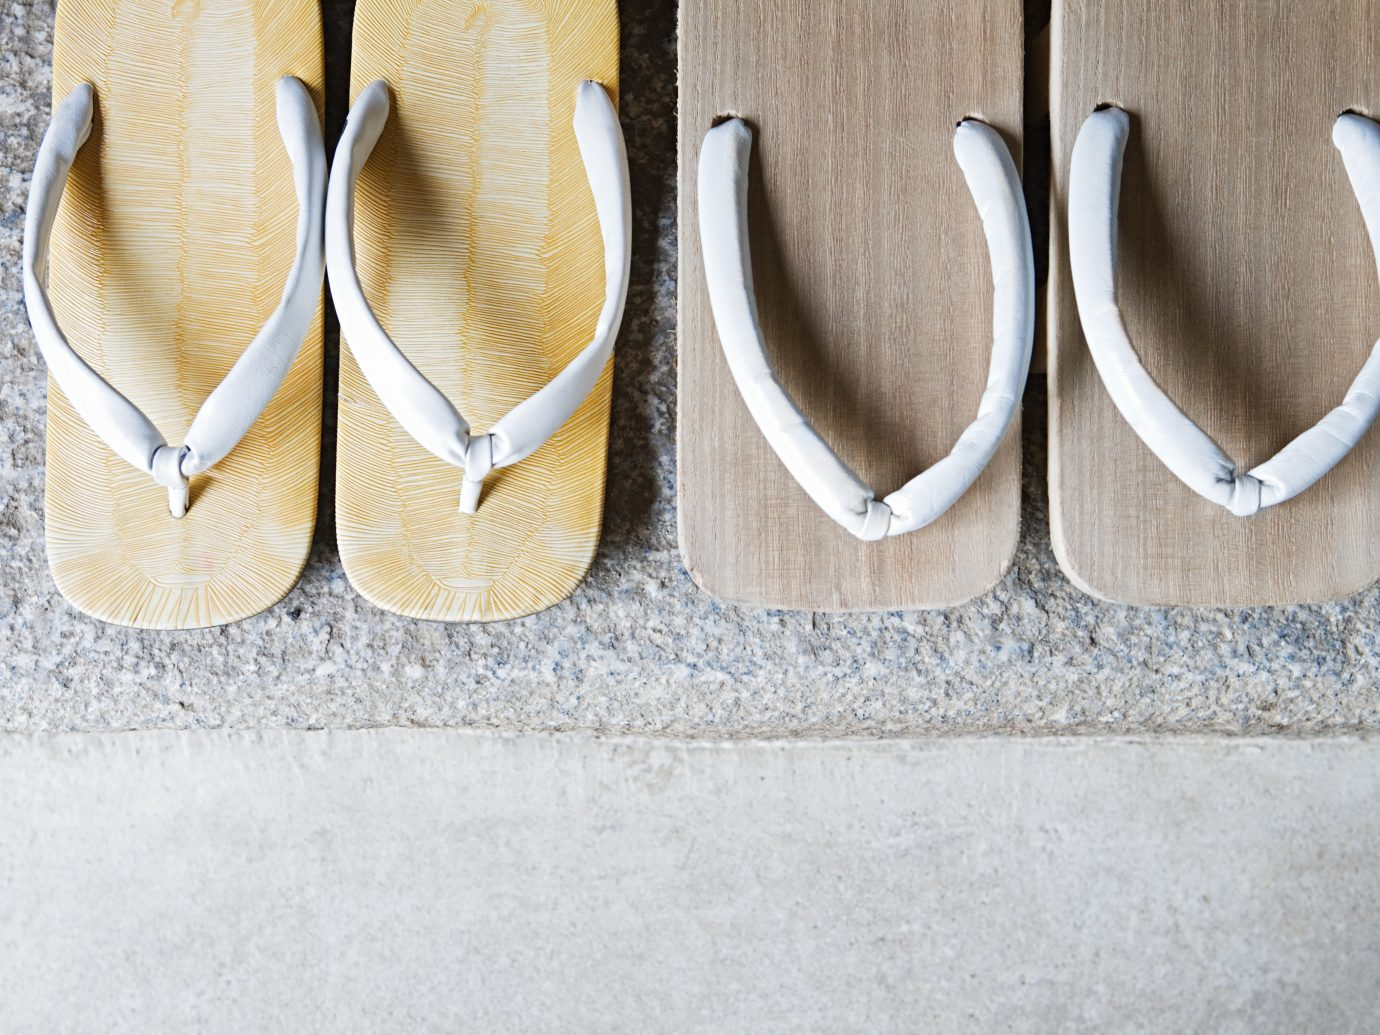 Two pairs of geta sandals